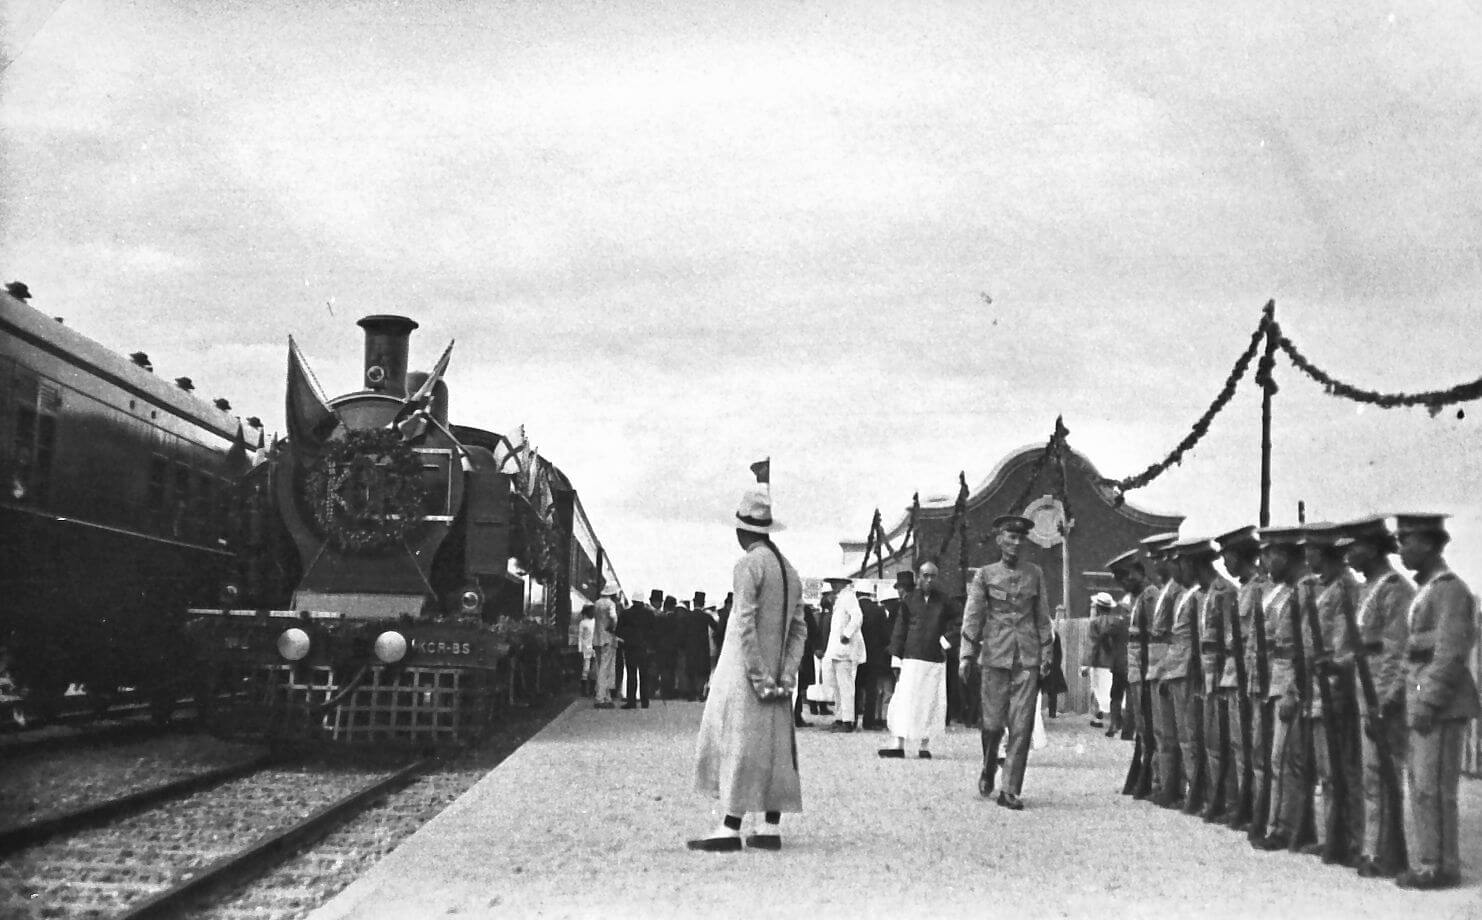 Why did British Introduced Railways in India?